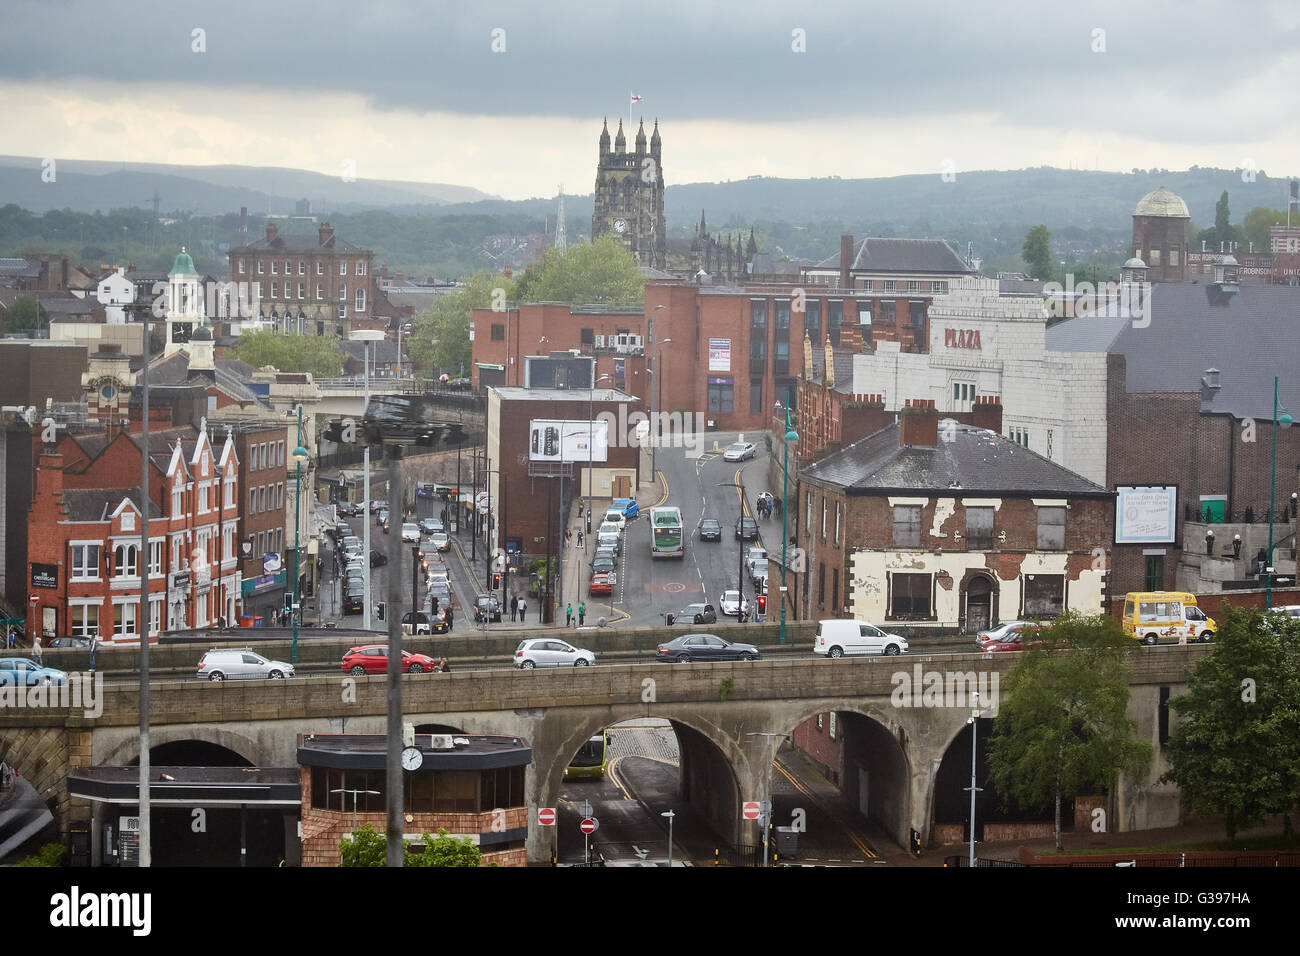 Stockport Merseyway shopping precinct town centre  Chester gate a6 road view beyond trees wet rain drizzle mist - Stock Image